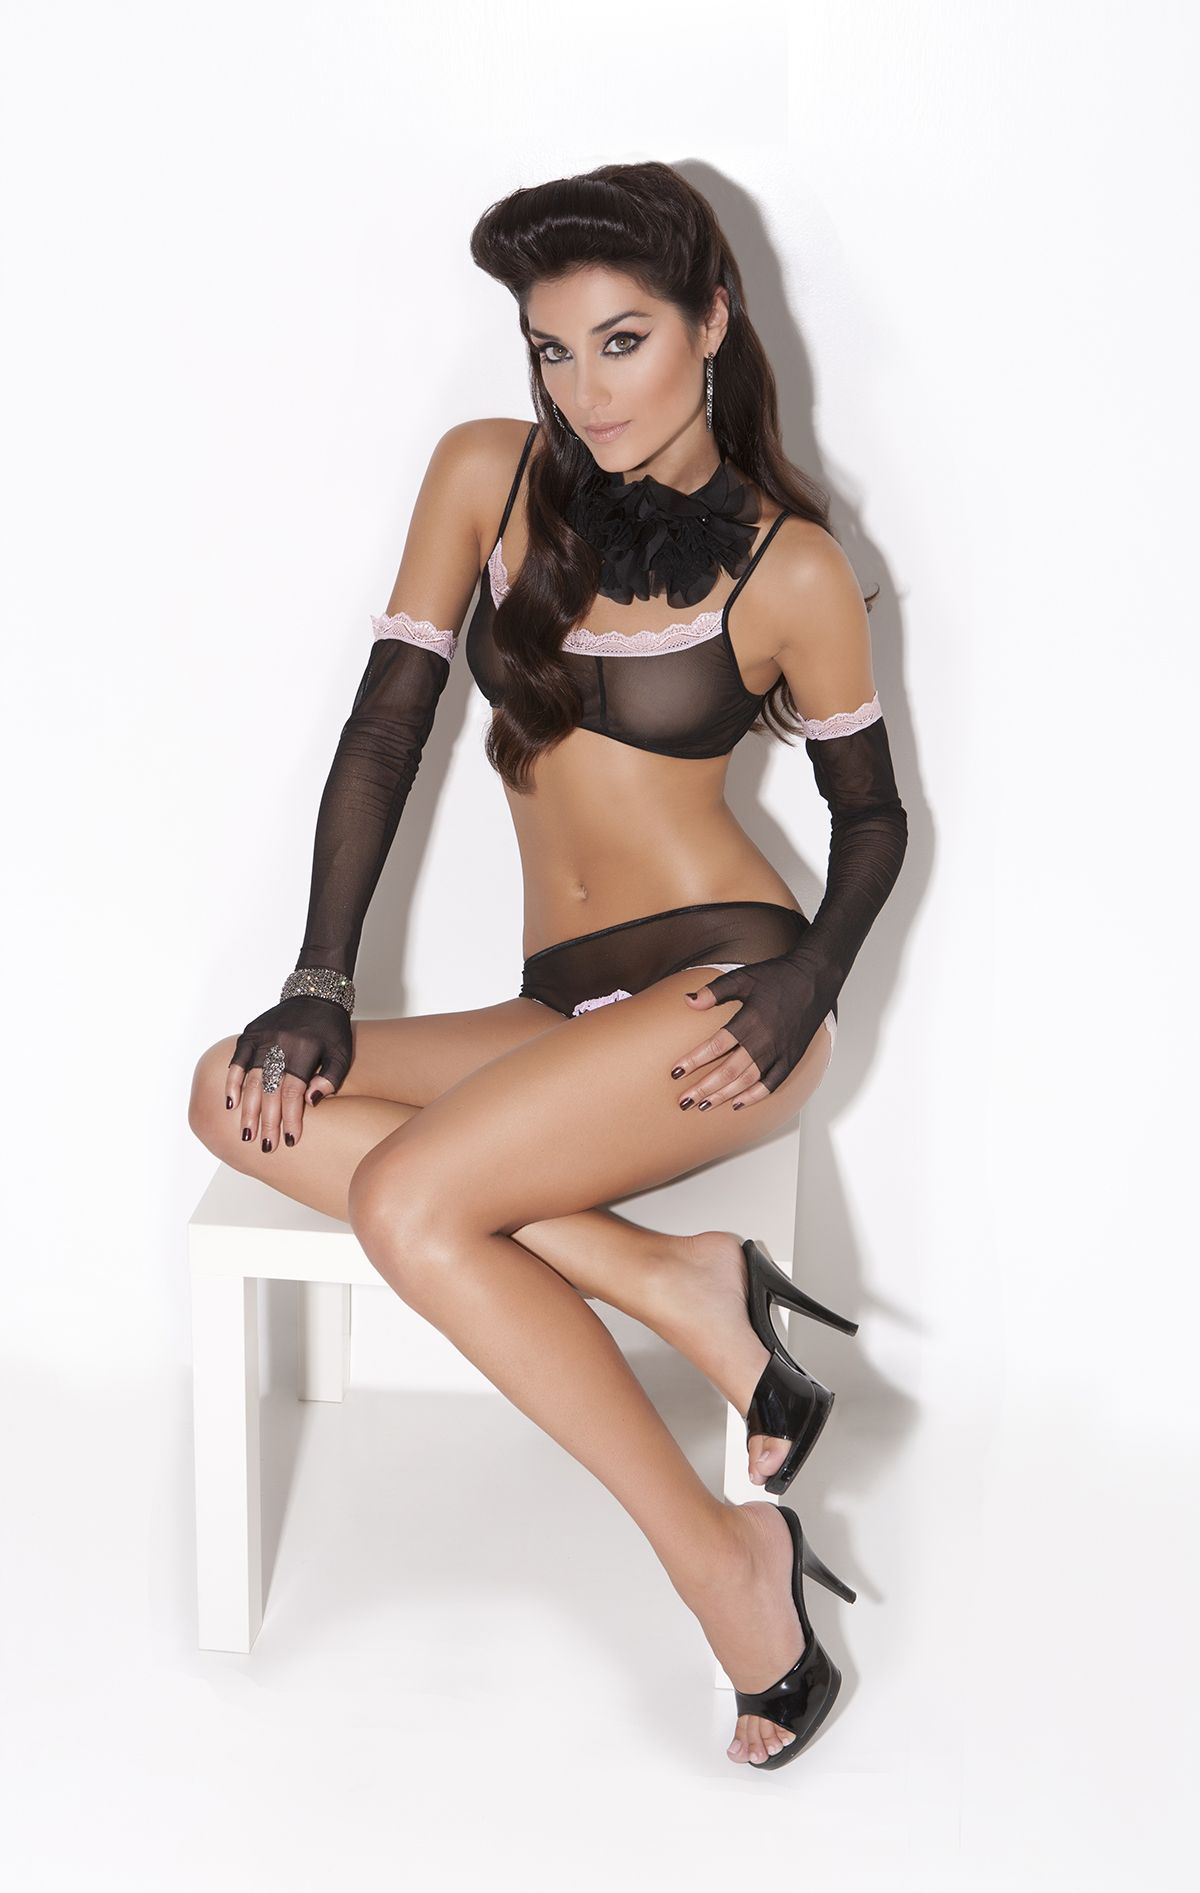 0d90b41880c Black and white complete lingerie set which includes a tube top in black  chiffon with black